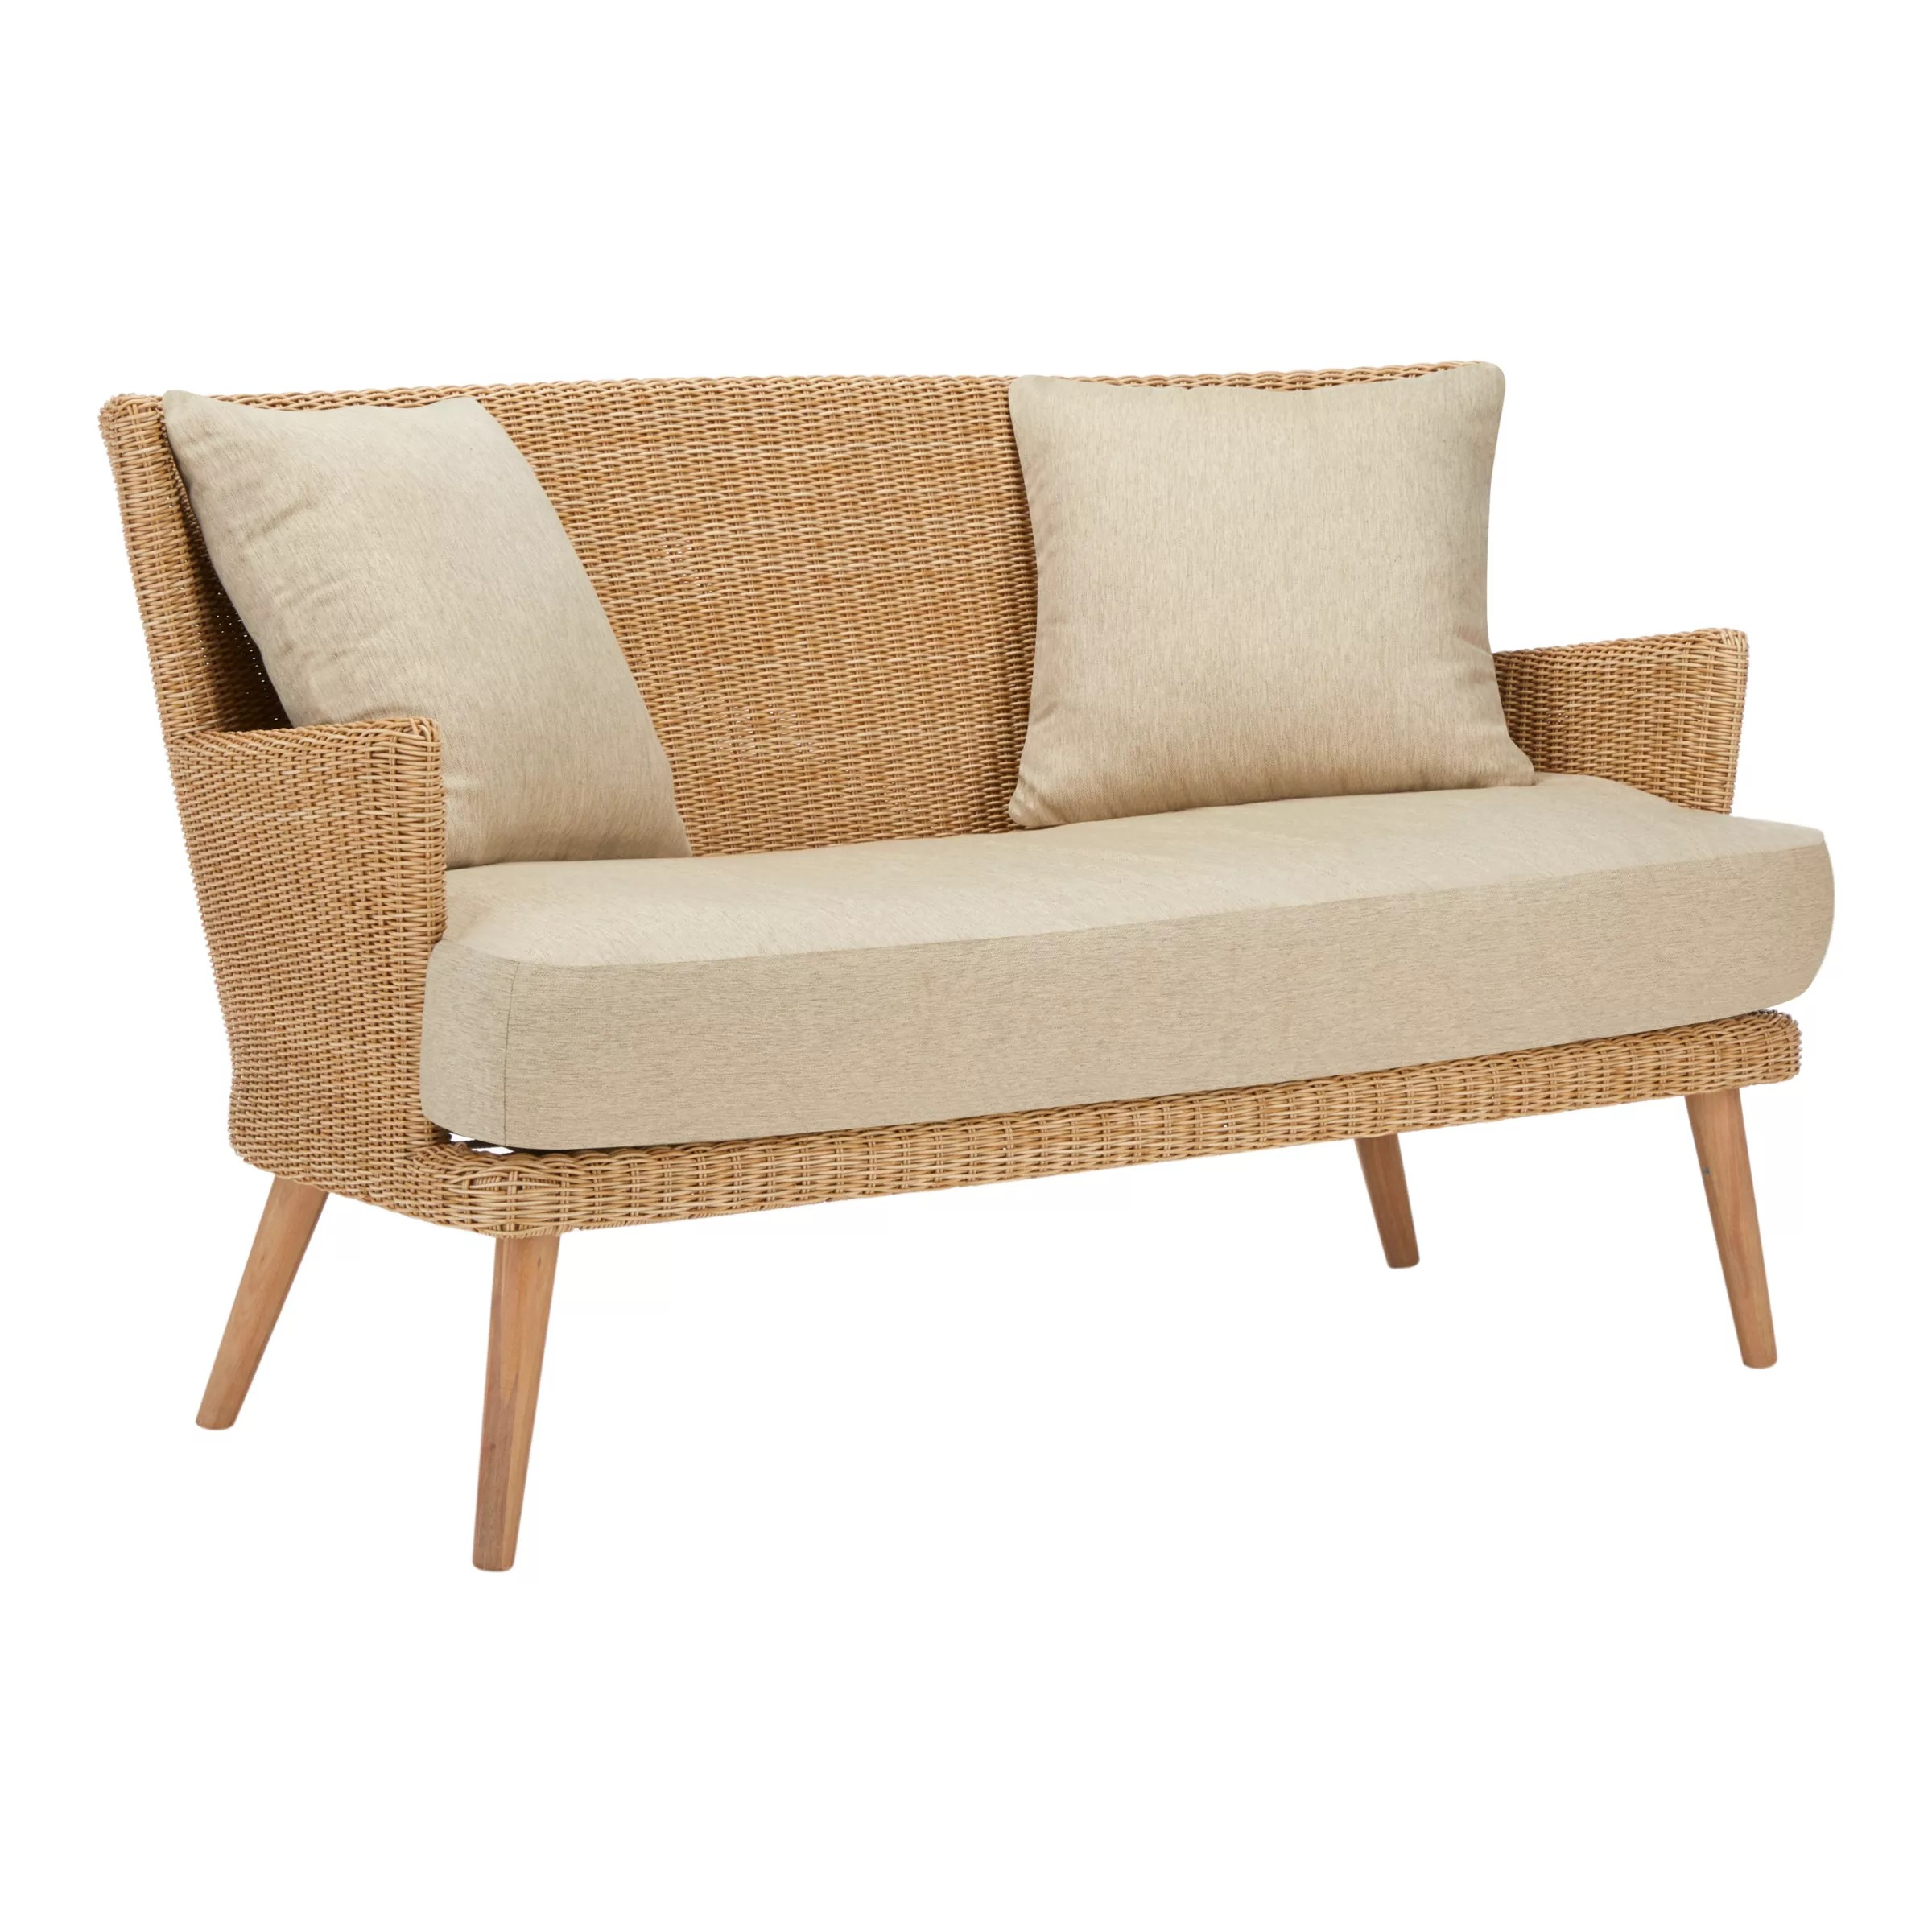 Gumtree Sofa John Lewis Croft Collection Iona 2 Seater Outdoor Sofa Fsc Certified